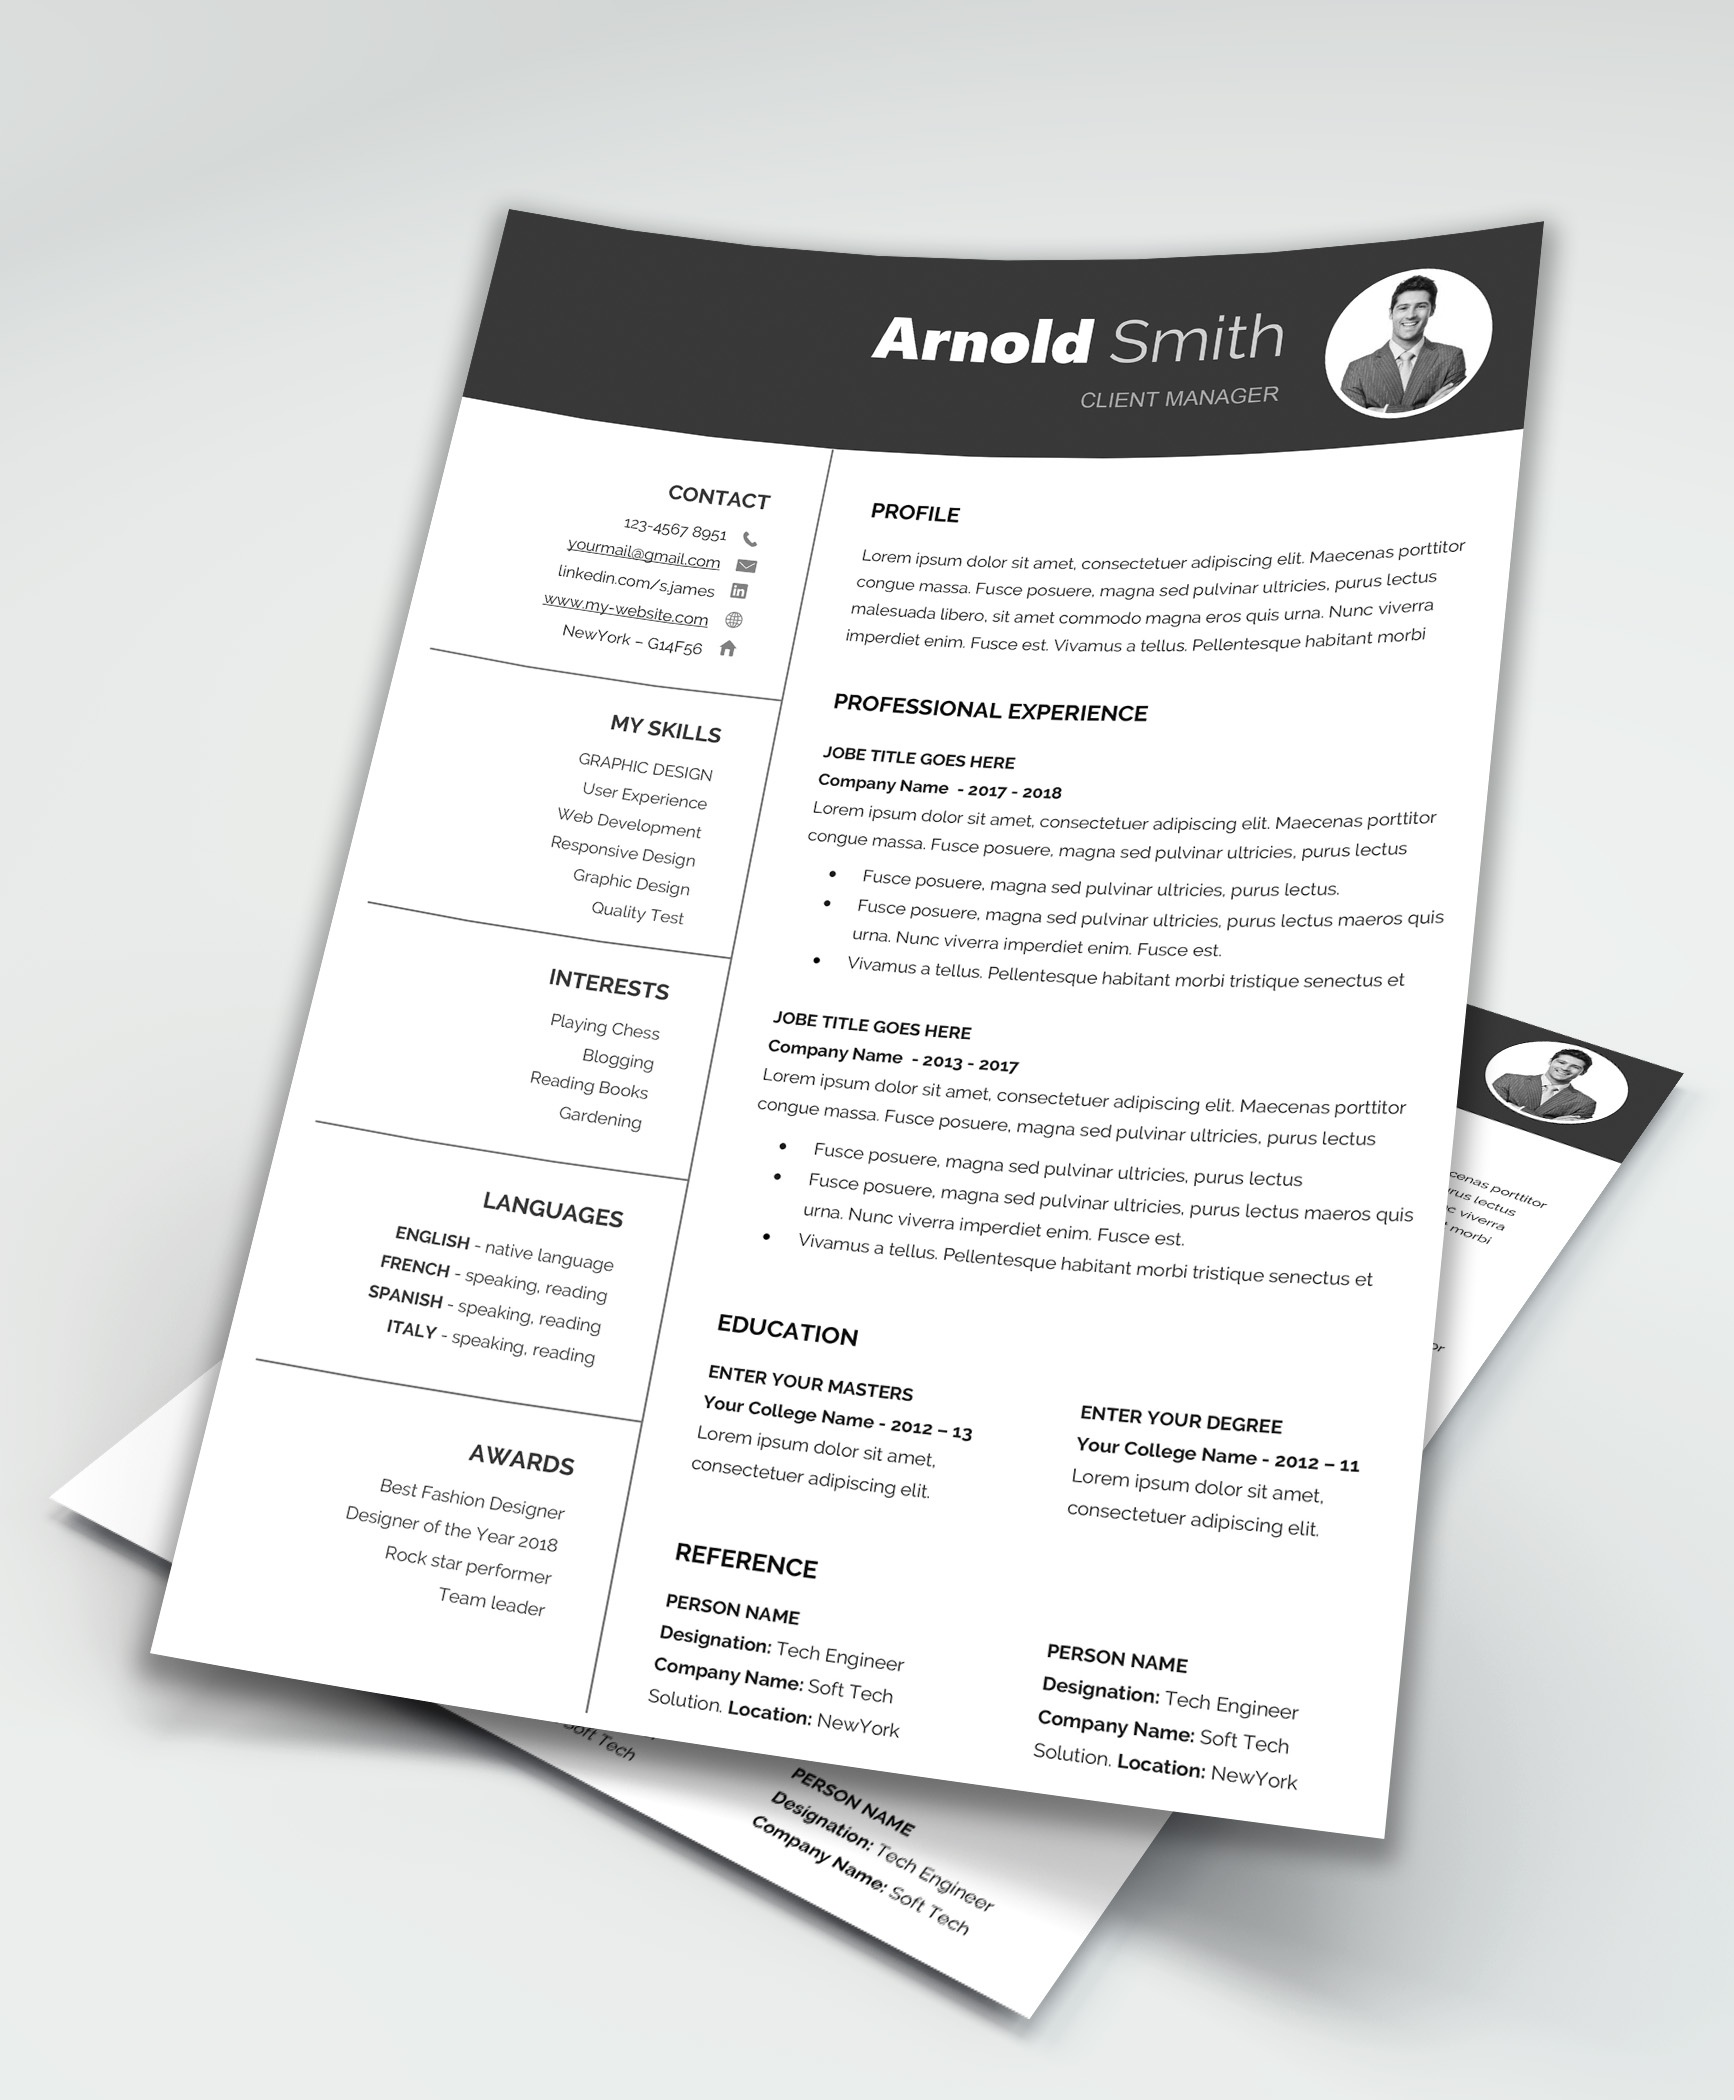 Where Can I Find Free CV Templates In Word